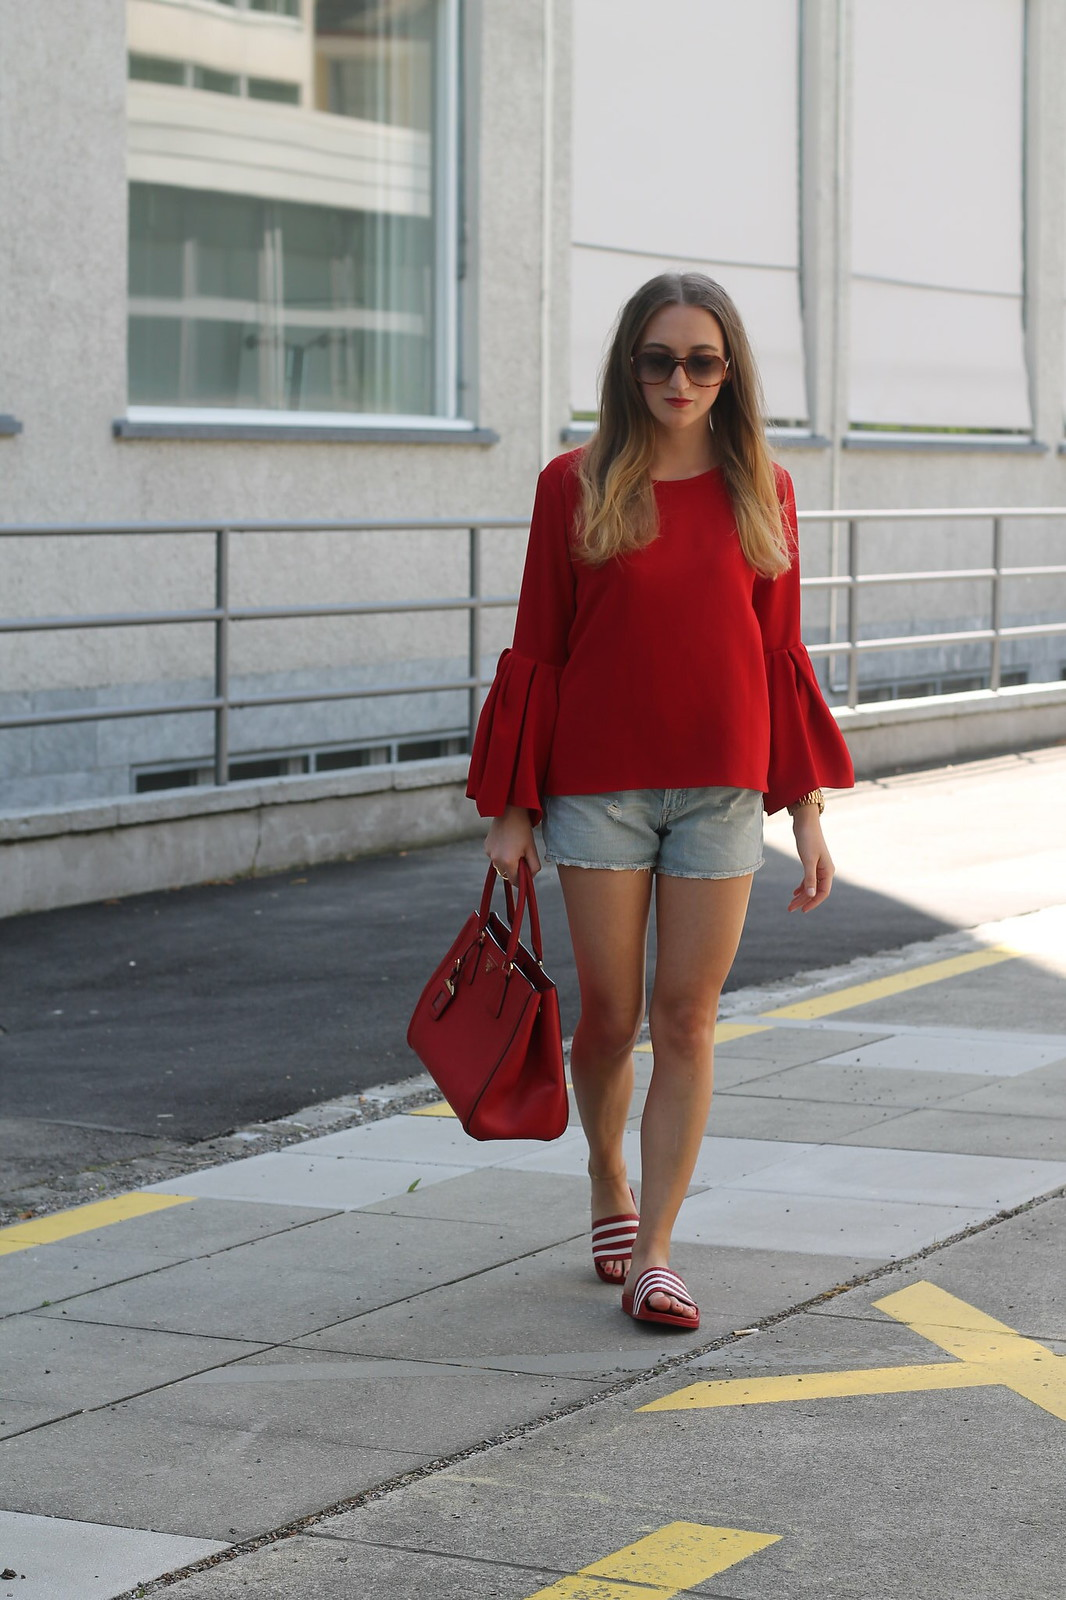 red-blouse-and-adiletten-whole-outfit-walk-wiebkembg